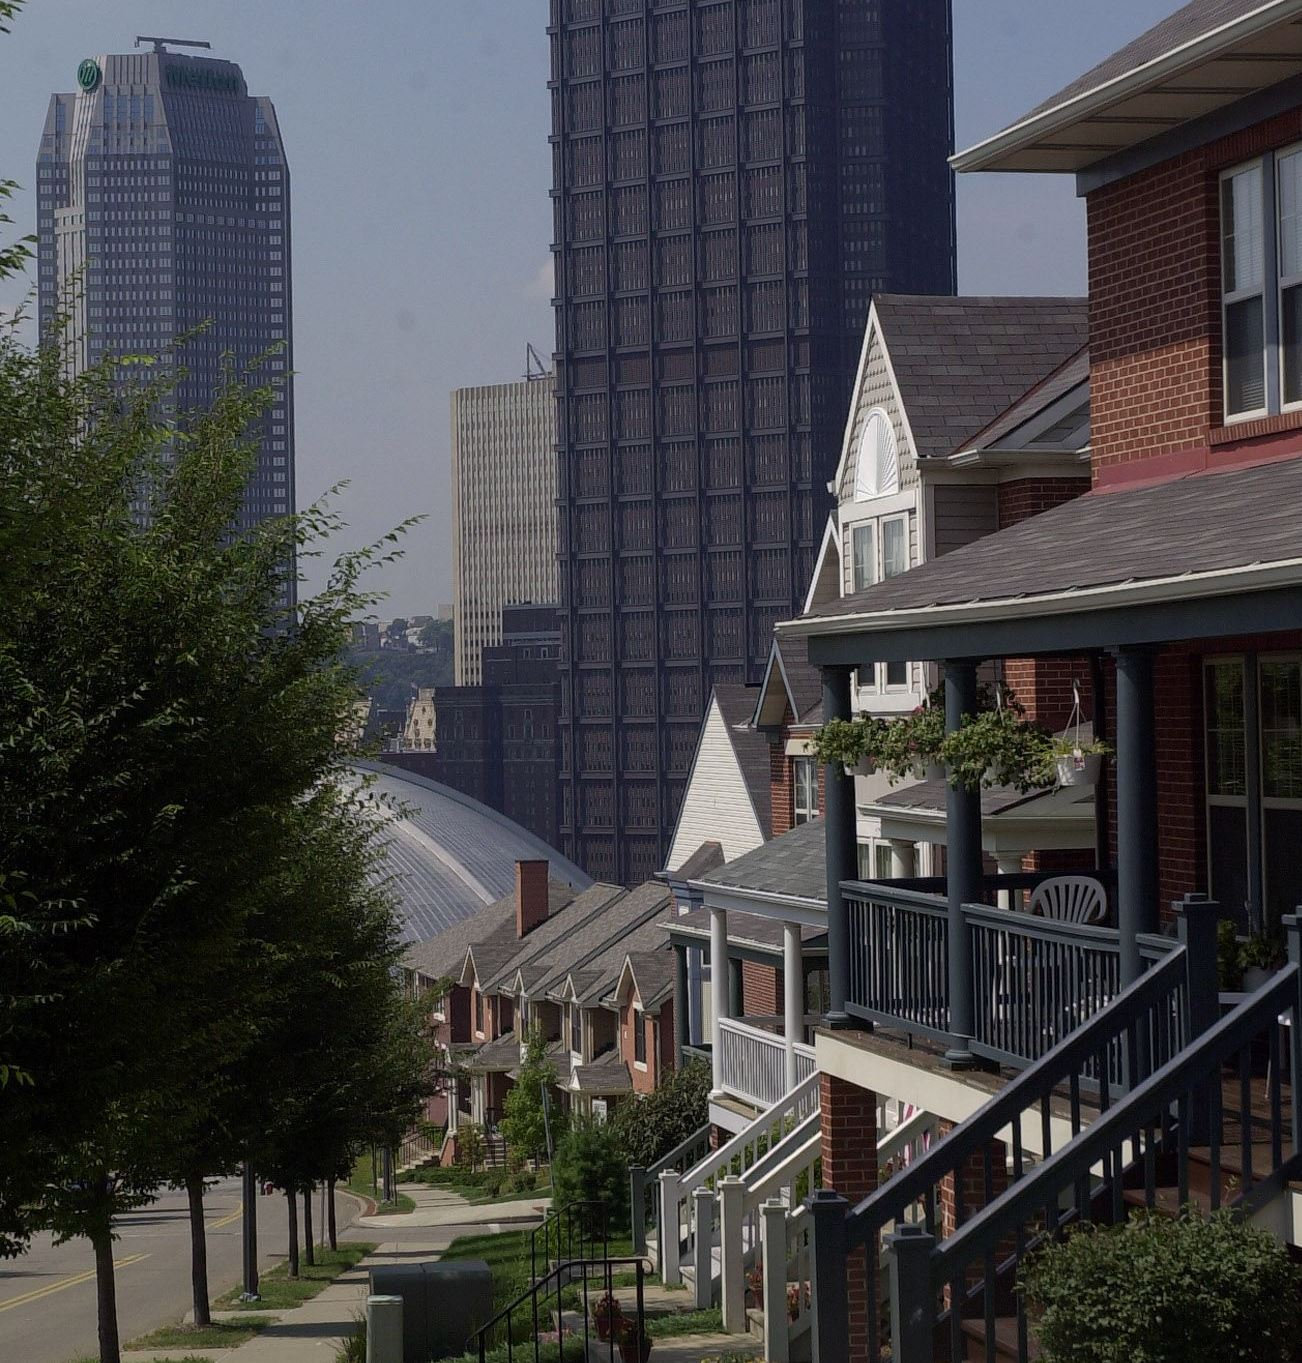 Low Income Apartments For Rent: For Those With Section 8 Vouchers, Finding Suitable